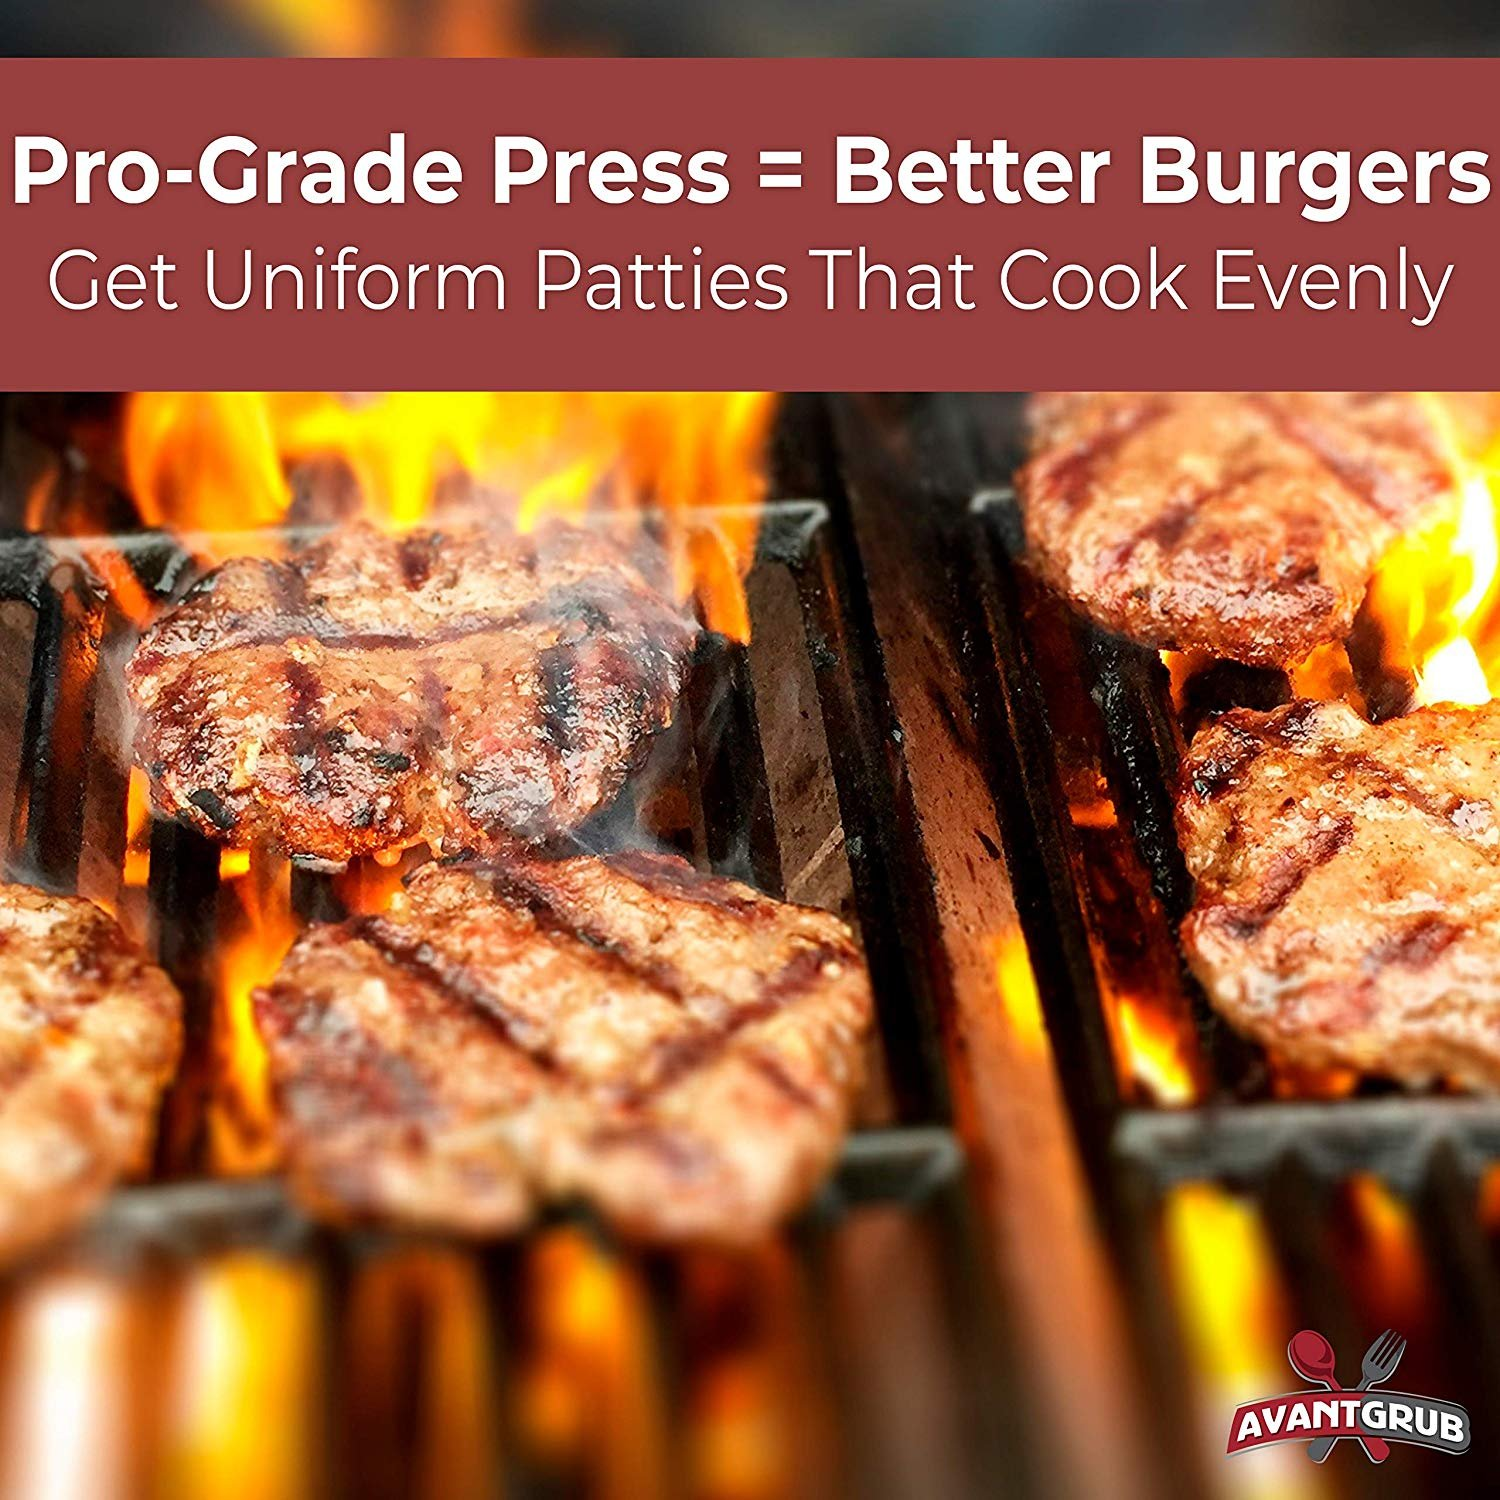 Avant Grub Grill Presses and Irons Great for .25 Lb Ground Beef or Chop Steak Patties Cast Aluminum 4.5 Hamburger Maker with 1000 Pk 4.75 x 5 Nonstick Wax Butcher Squares Restaurant-Grade Burger Press and Patty Paper Combo Set